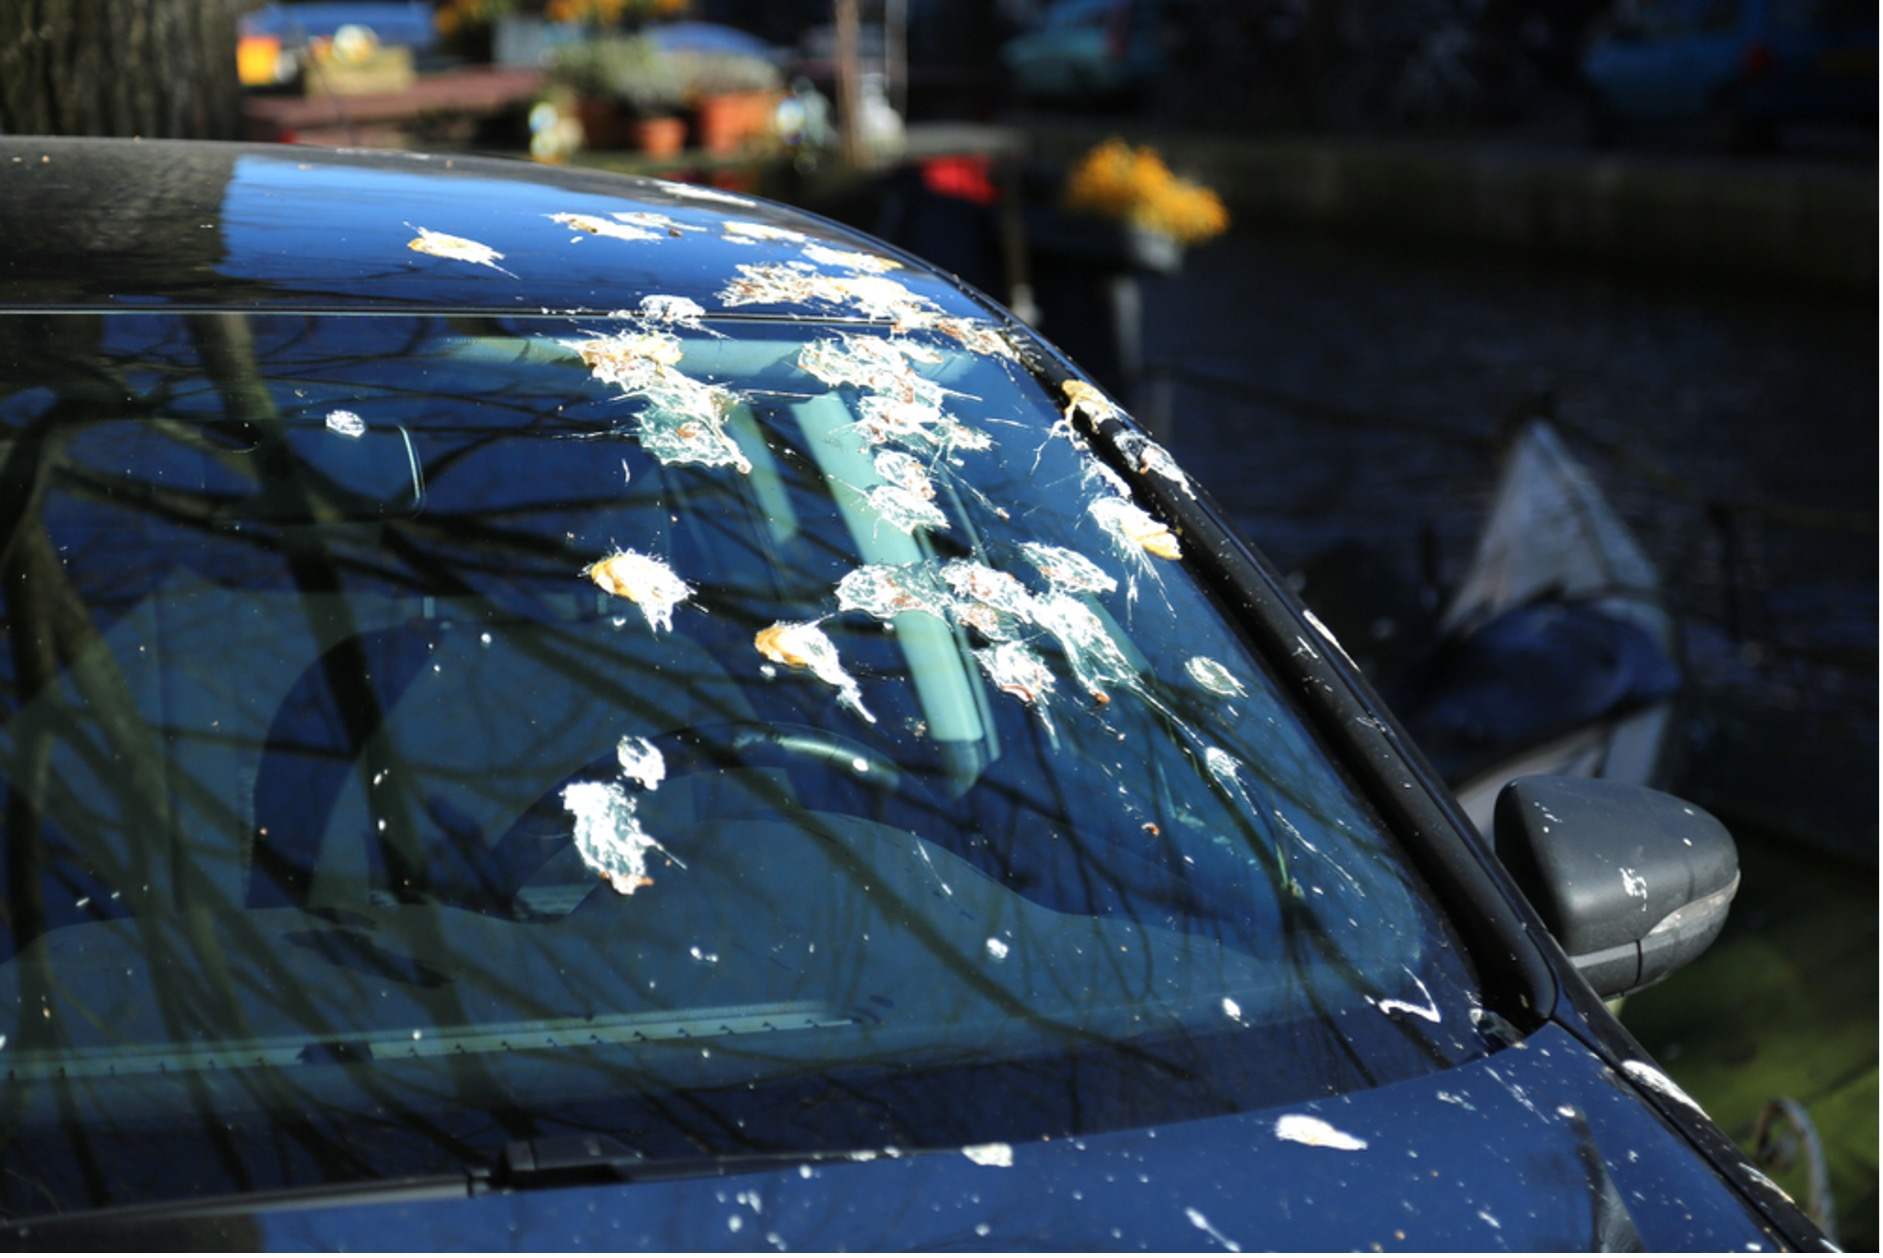 Things that will damage your car paint